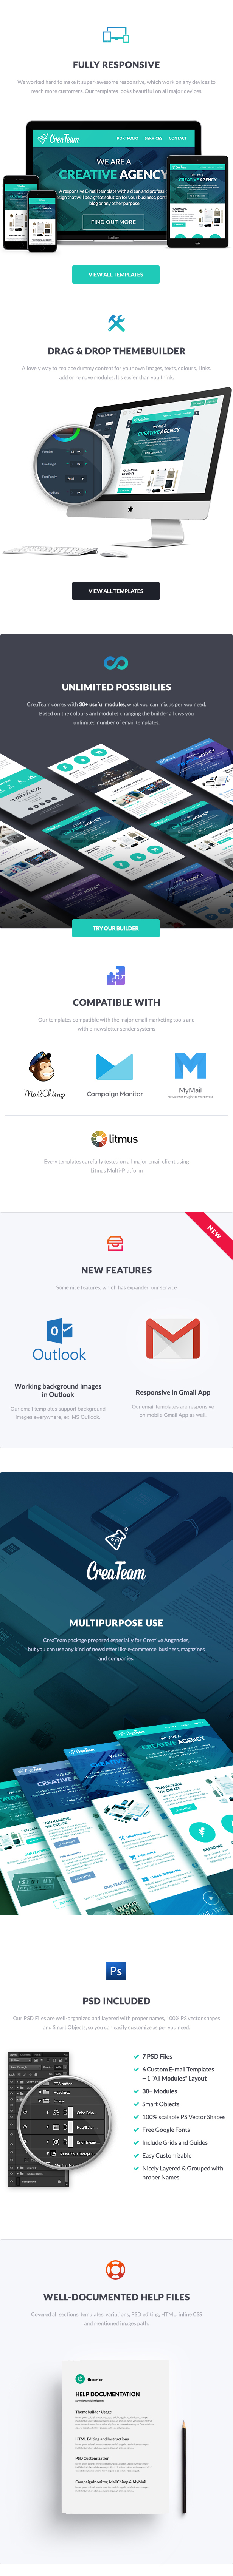 CreaTeam - Multipurpose Agency E-newsletter Template